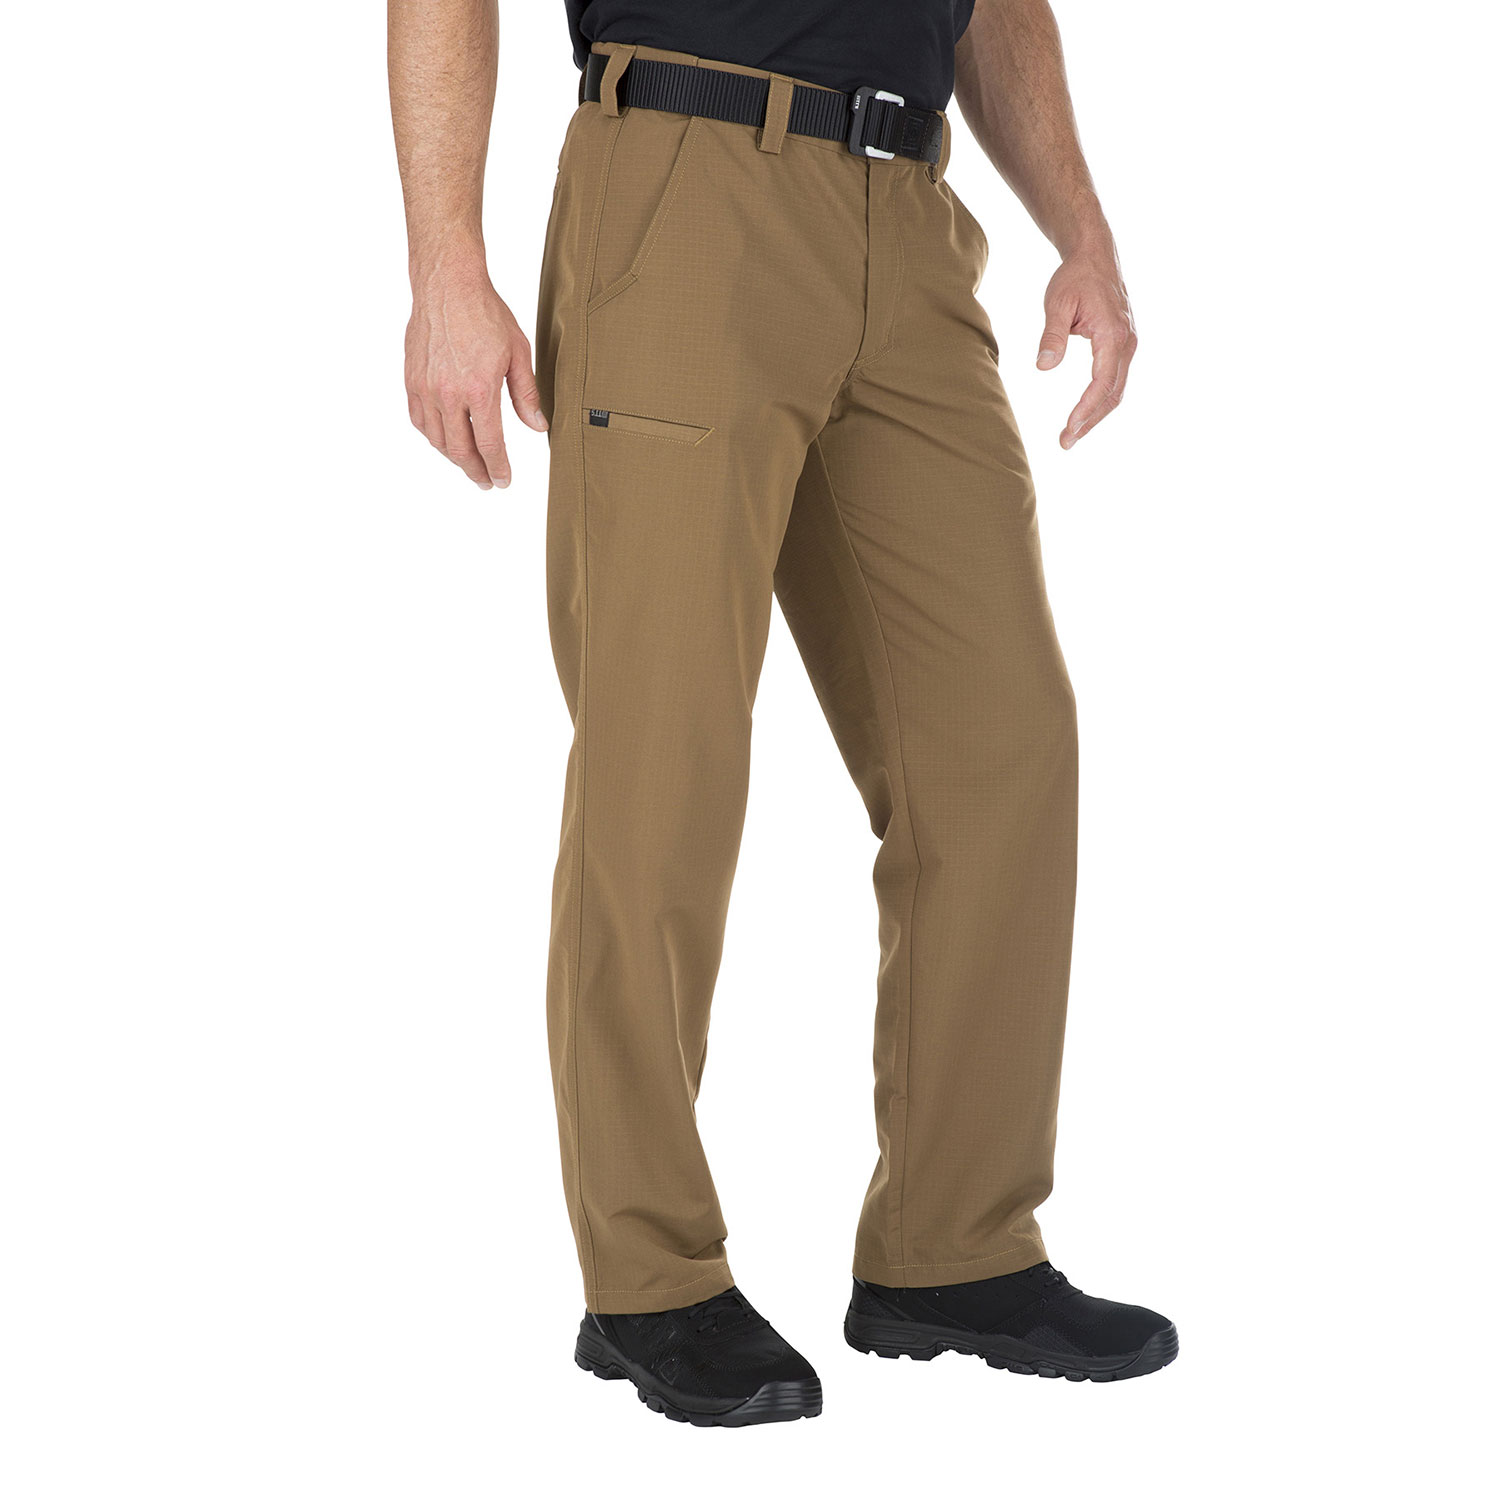 5.11 Tactical Fast-Tac Urban Pant